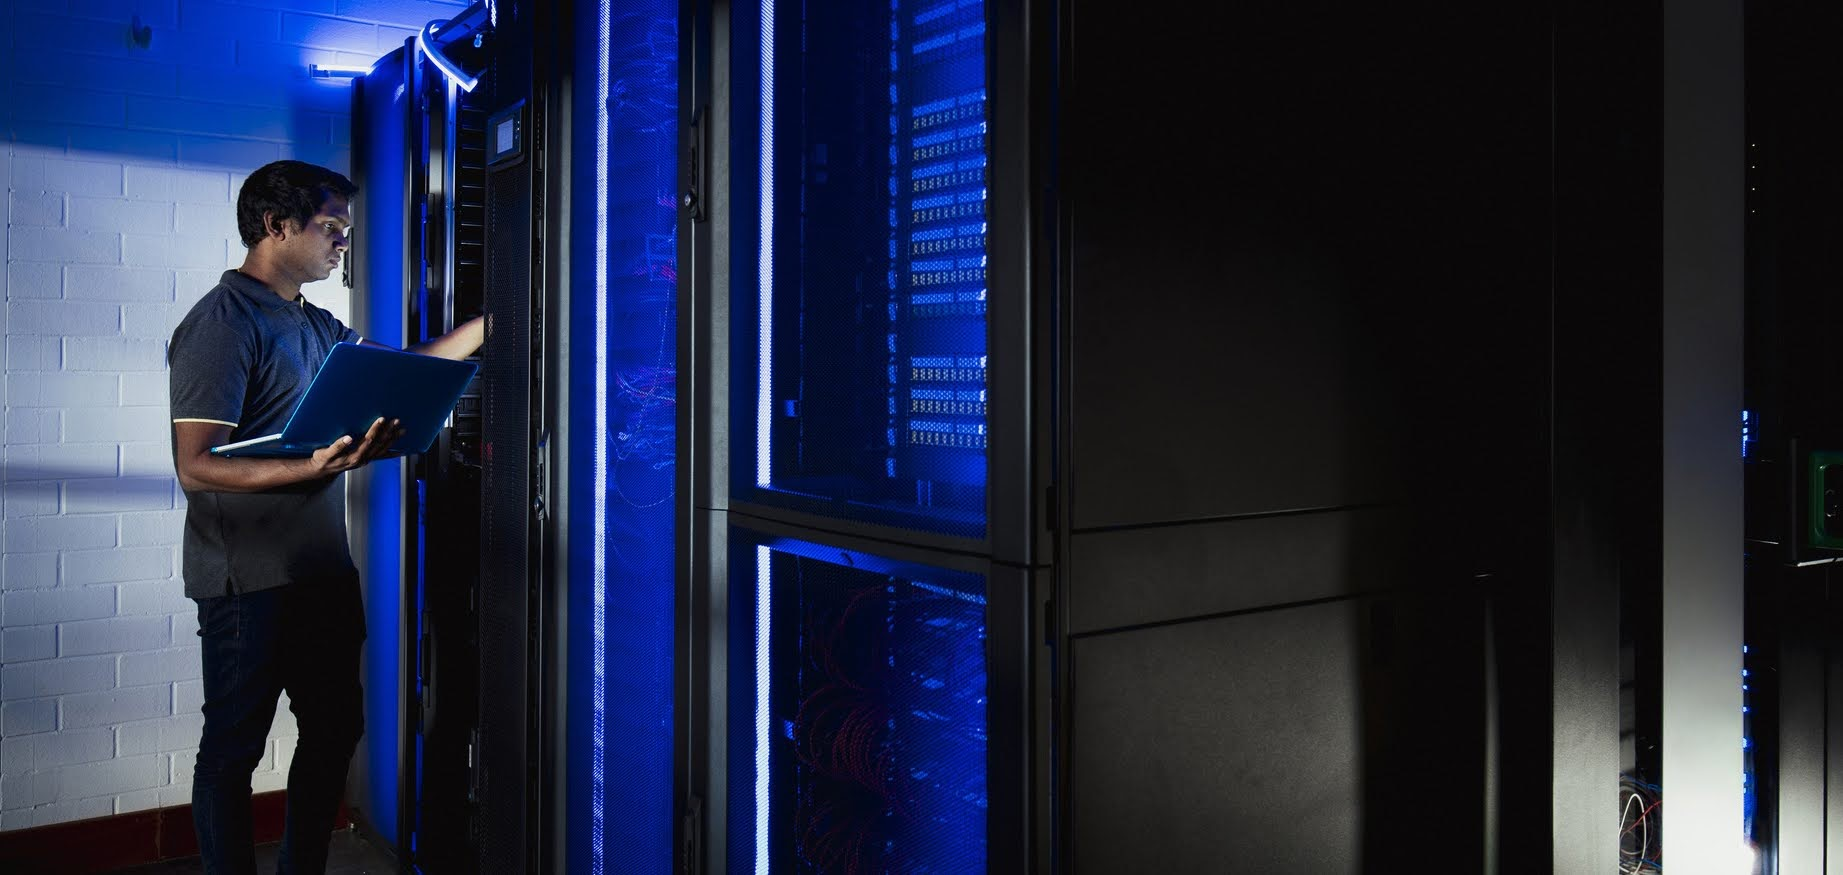 Cooling and Electrical Team Up to Protect Supercomputing Uptime At the Center of Supercomputing: ABM Mission Critical Maintenance for Data Centers